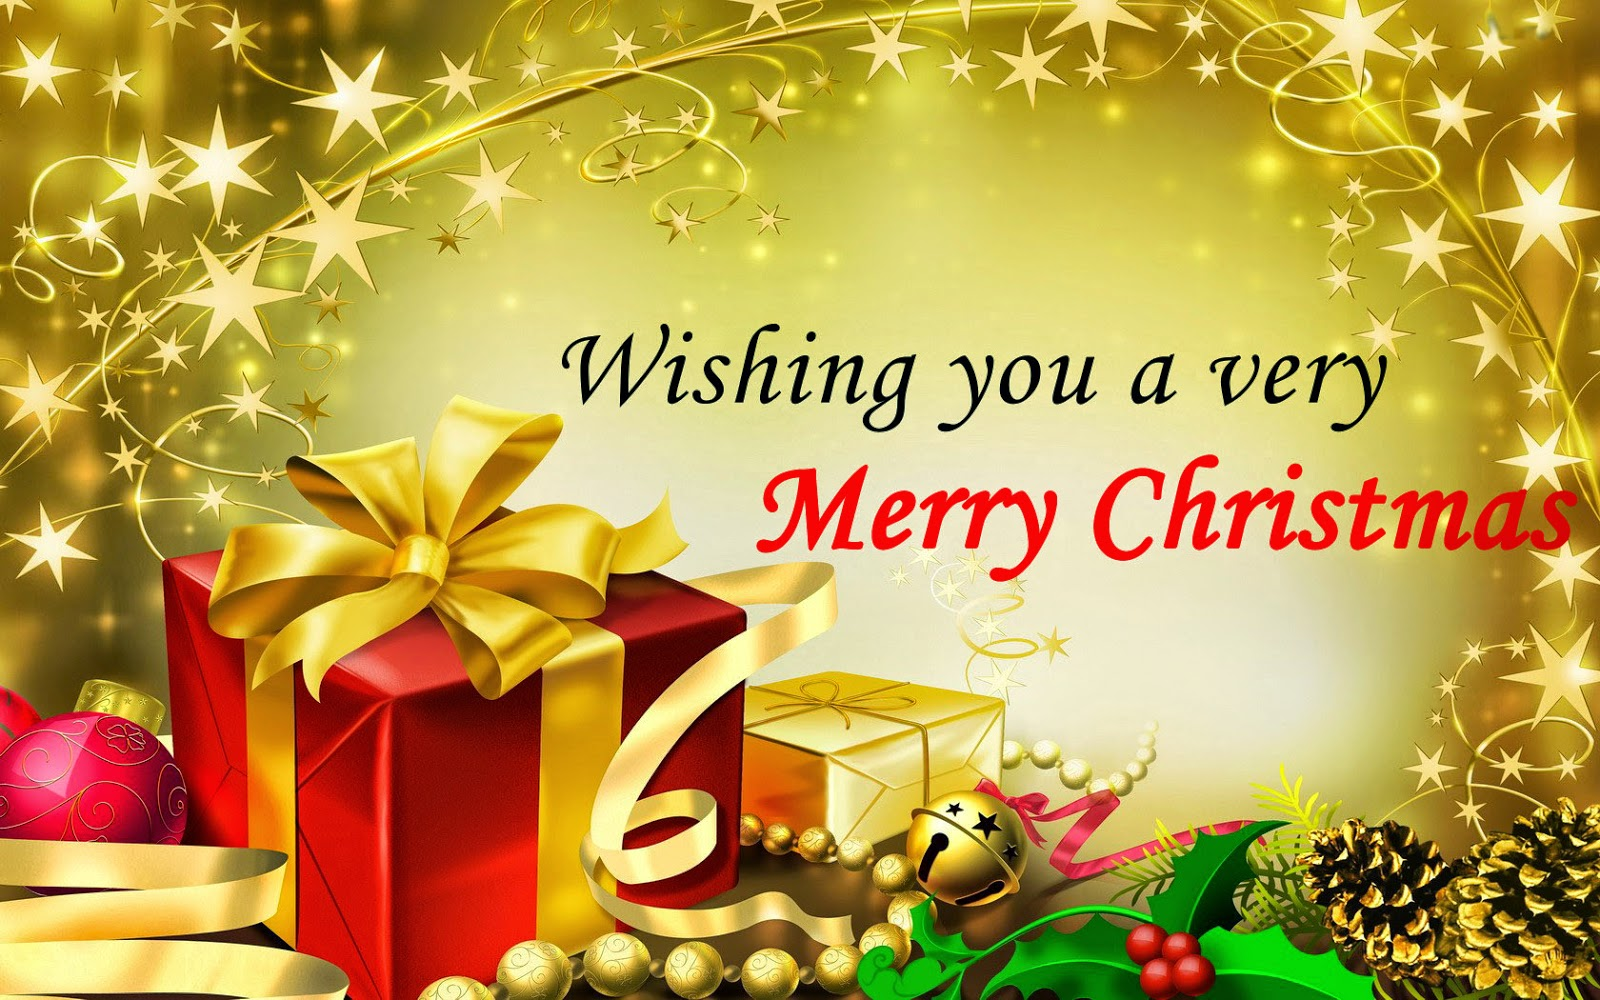 wishing-you-a-very-merry-christmas-greetings-message-texted-image-for-cards.jpg